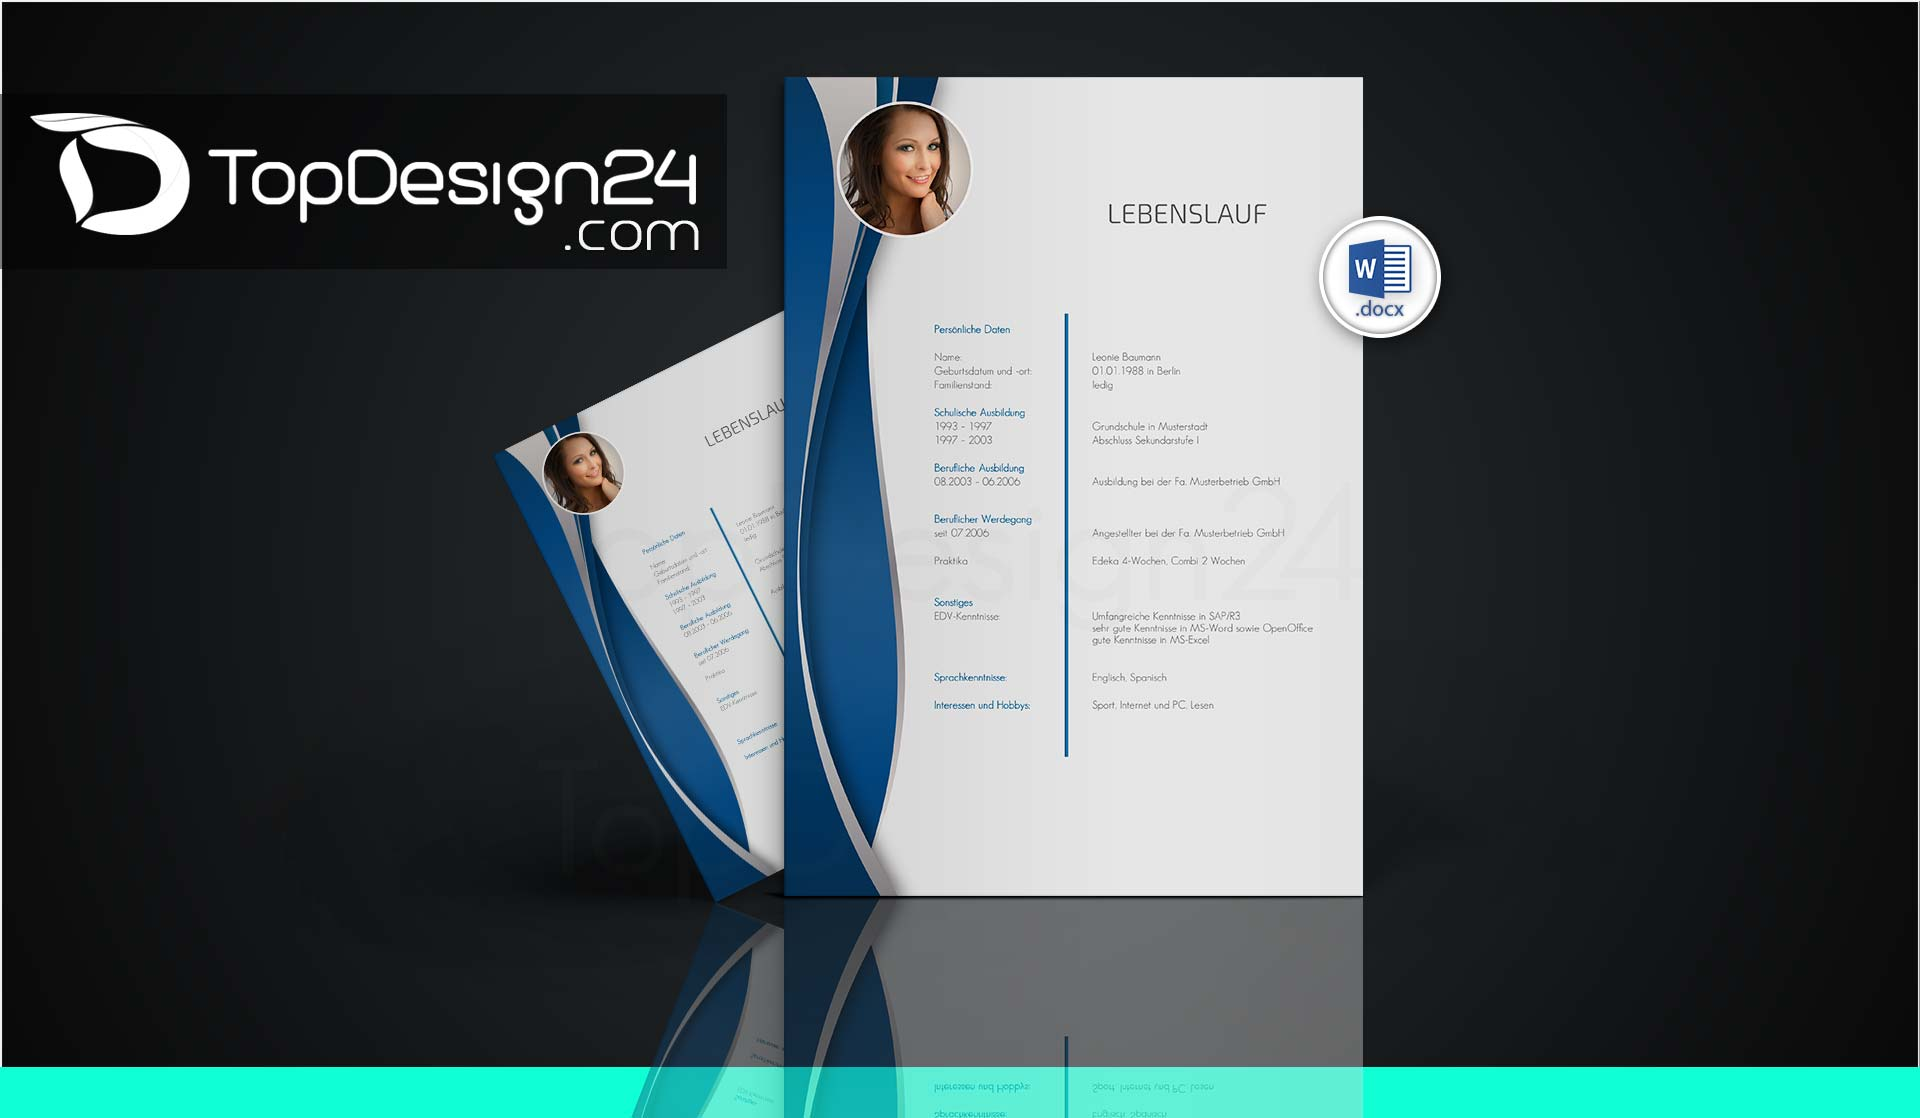 Home Shop Layout And Design Bewerbung Designvorlagen Topdesign24 Bewerbungsvorlagen